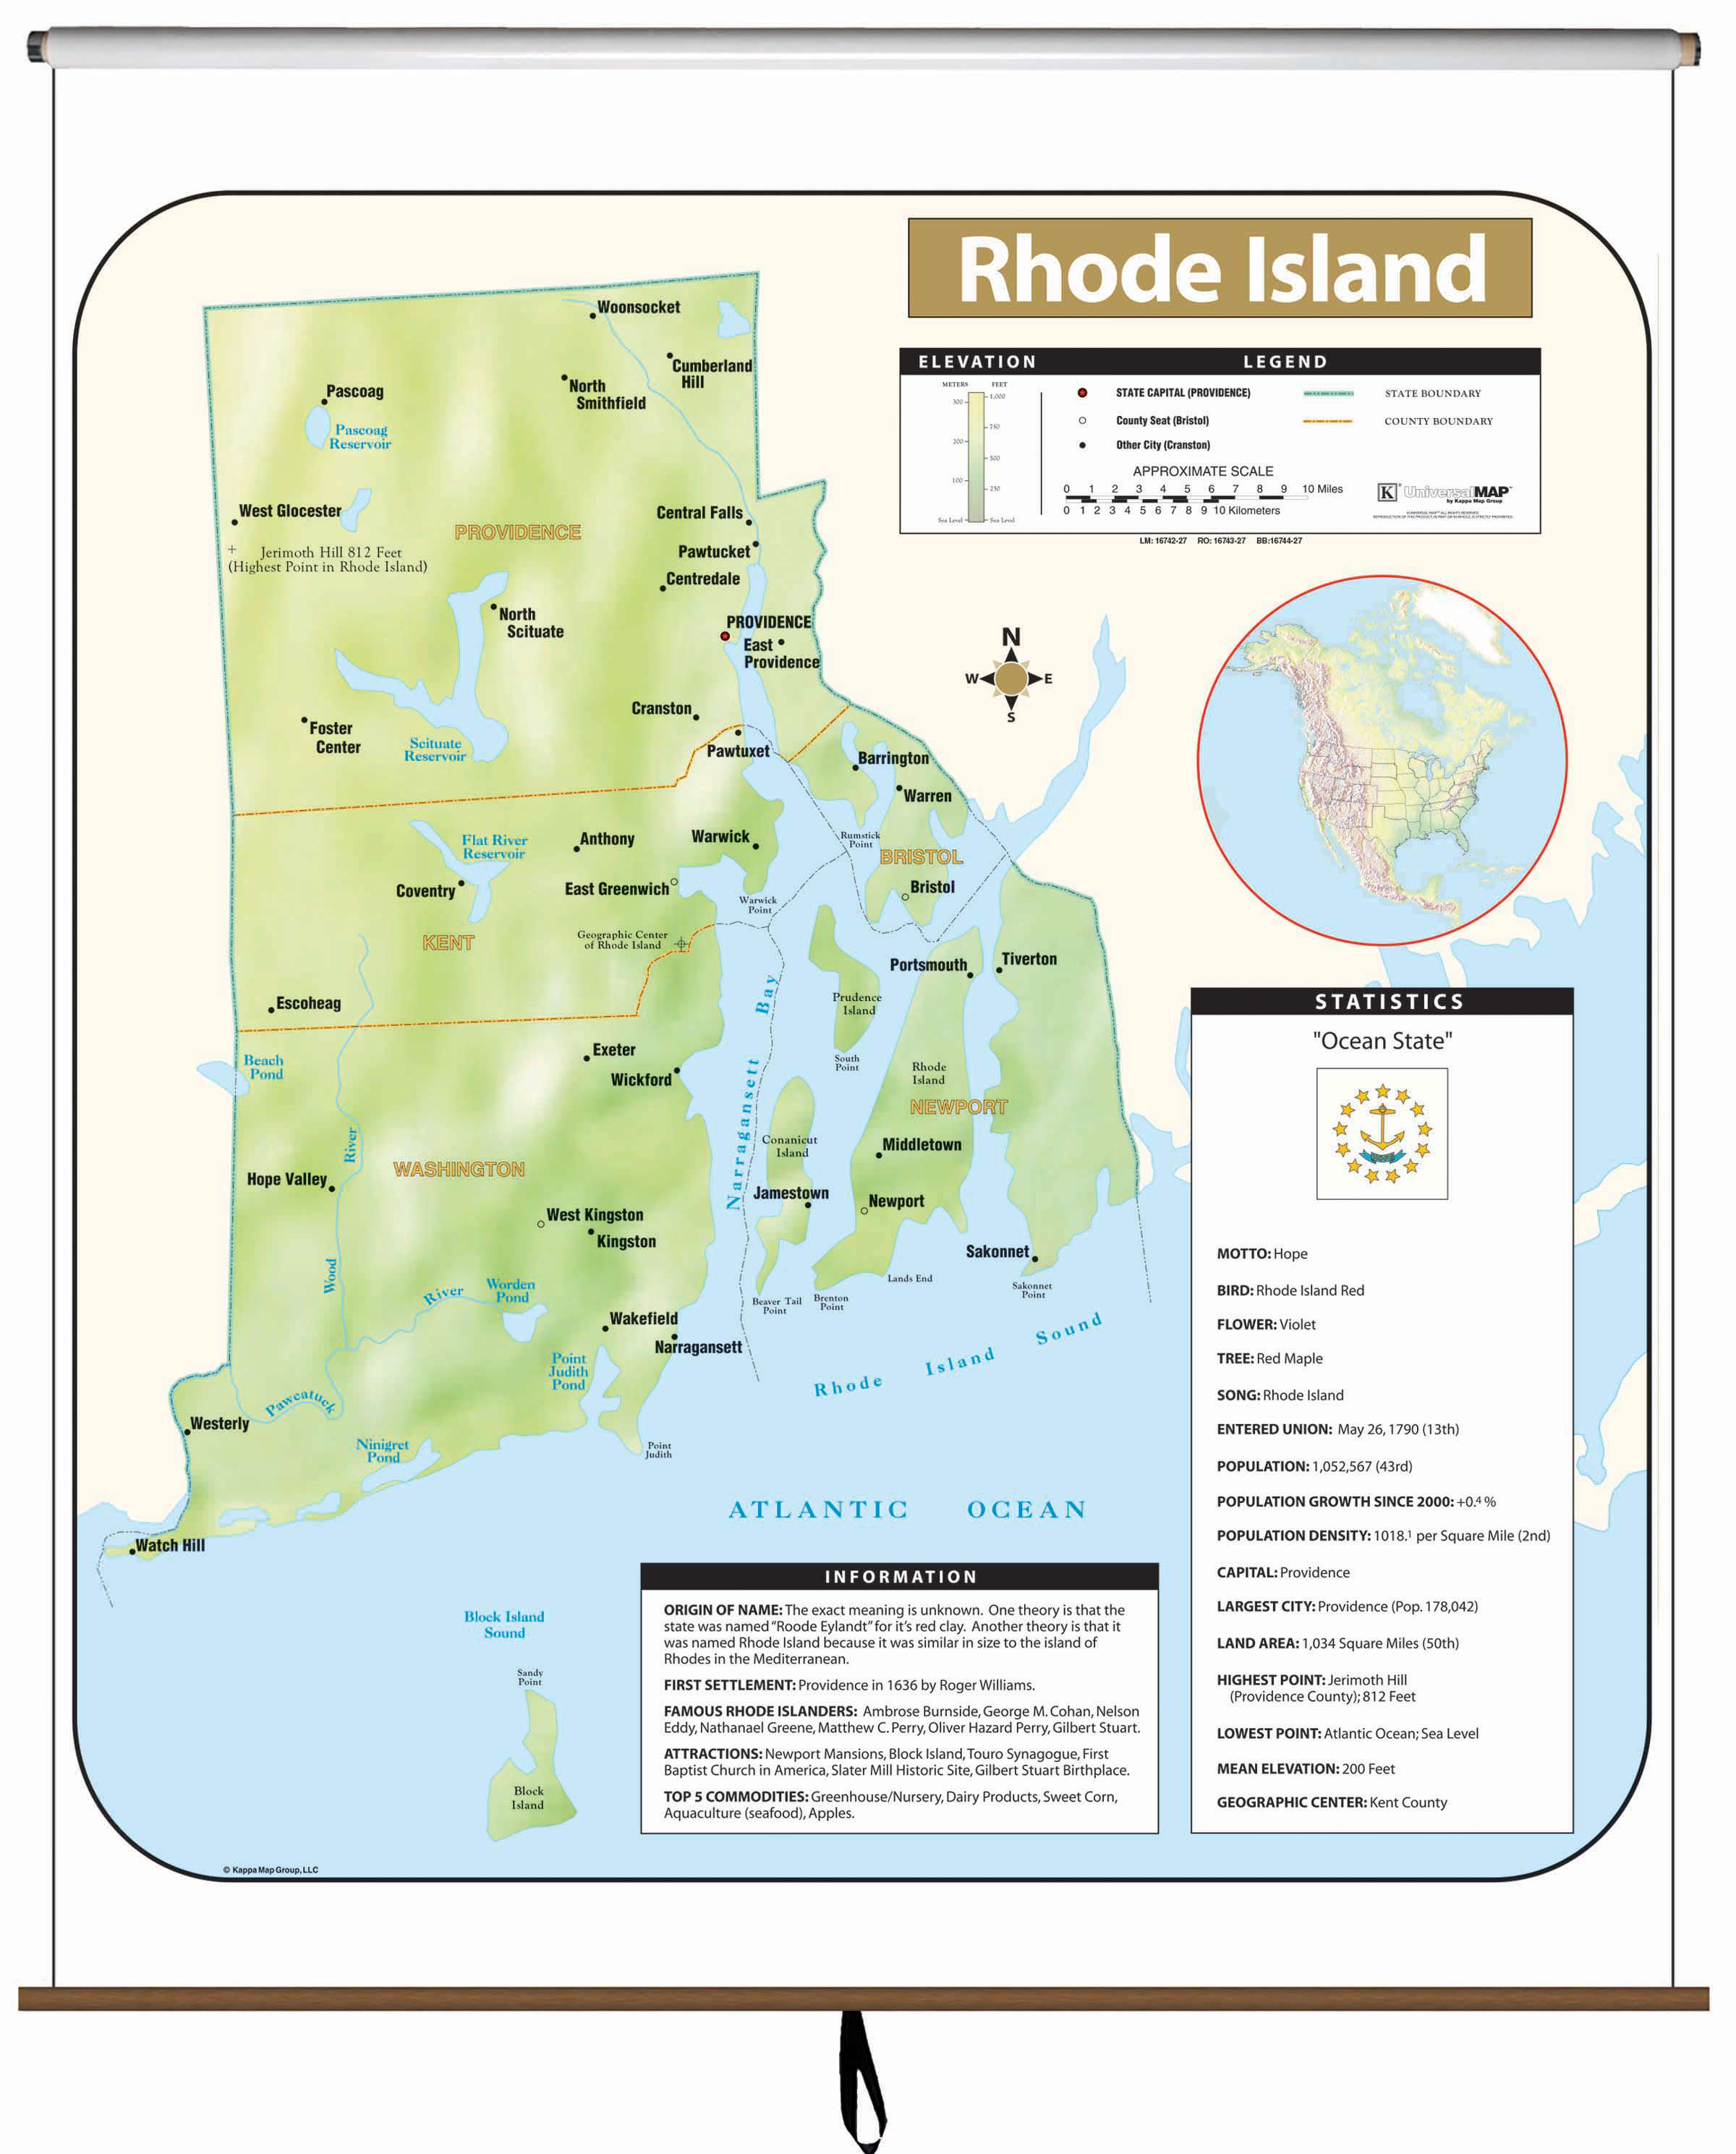 Rhode Island Large Scale Shaded Relief Wall Map on Roller – KAPPA ...